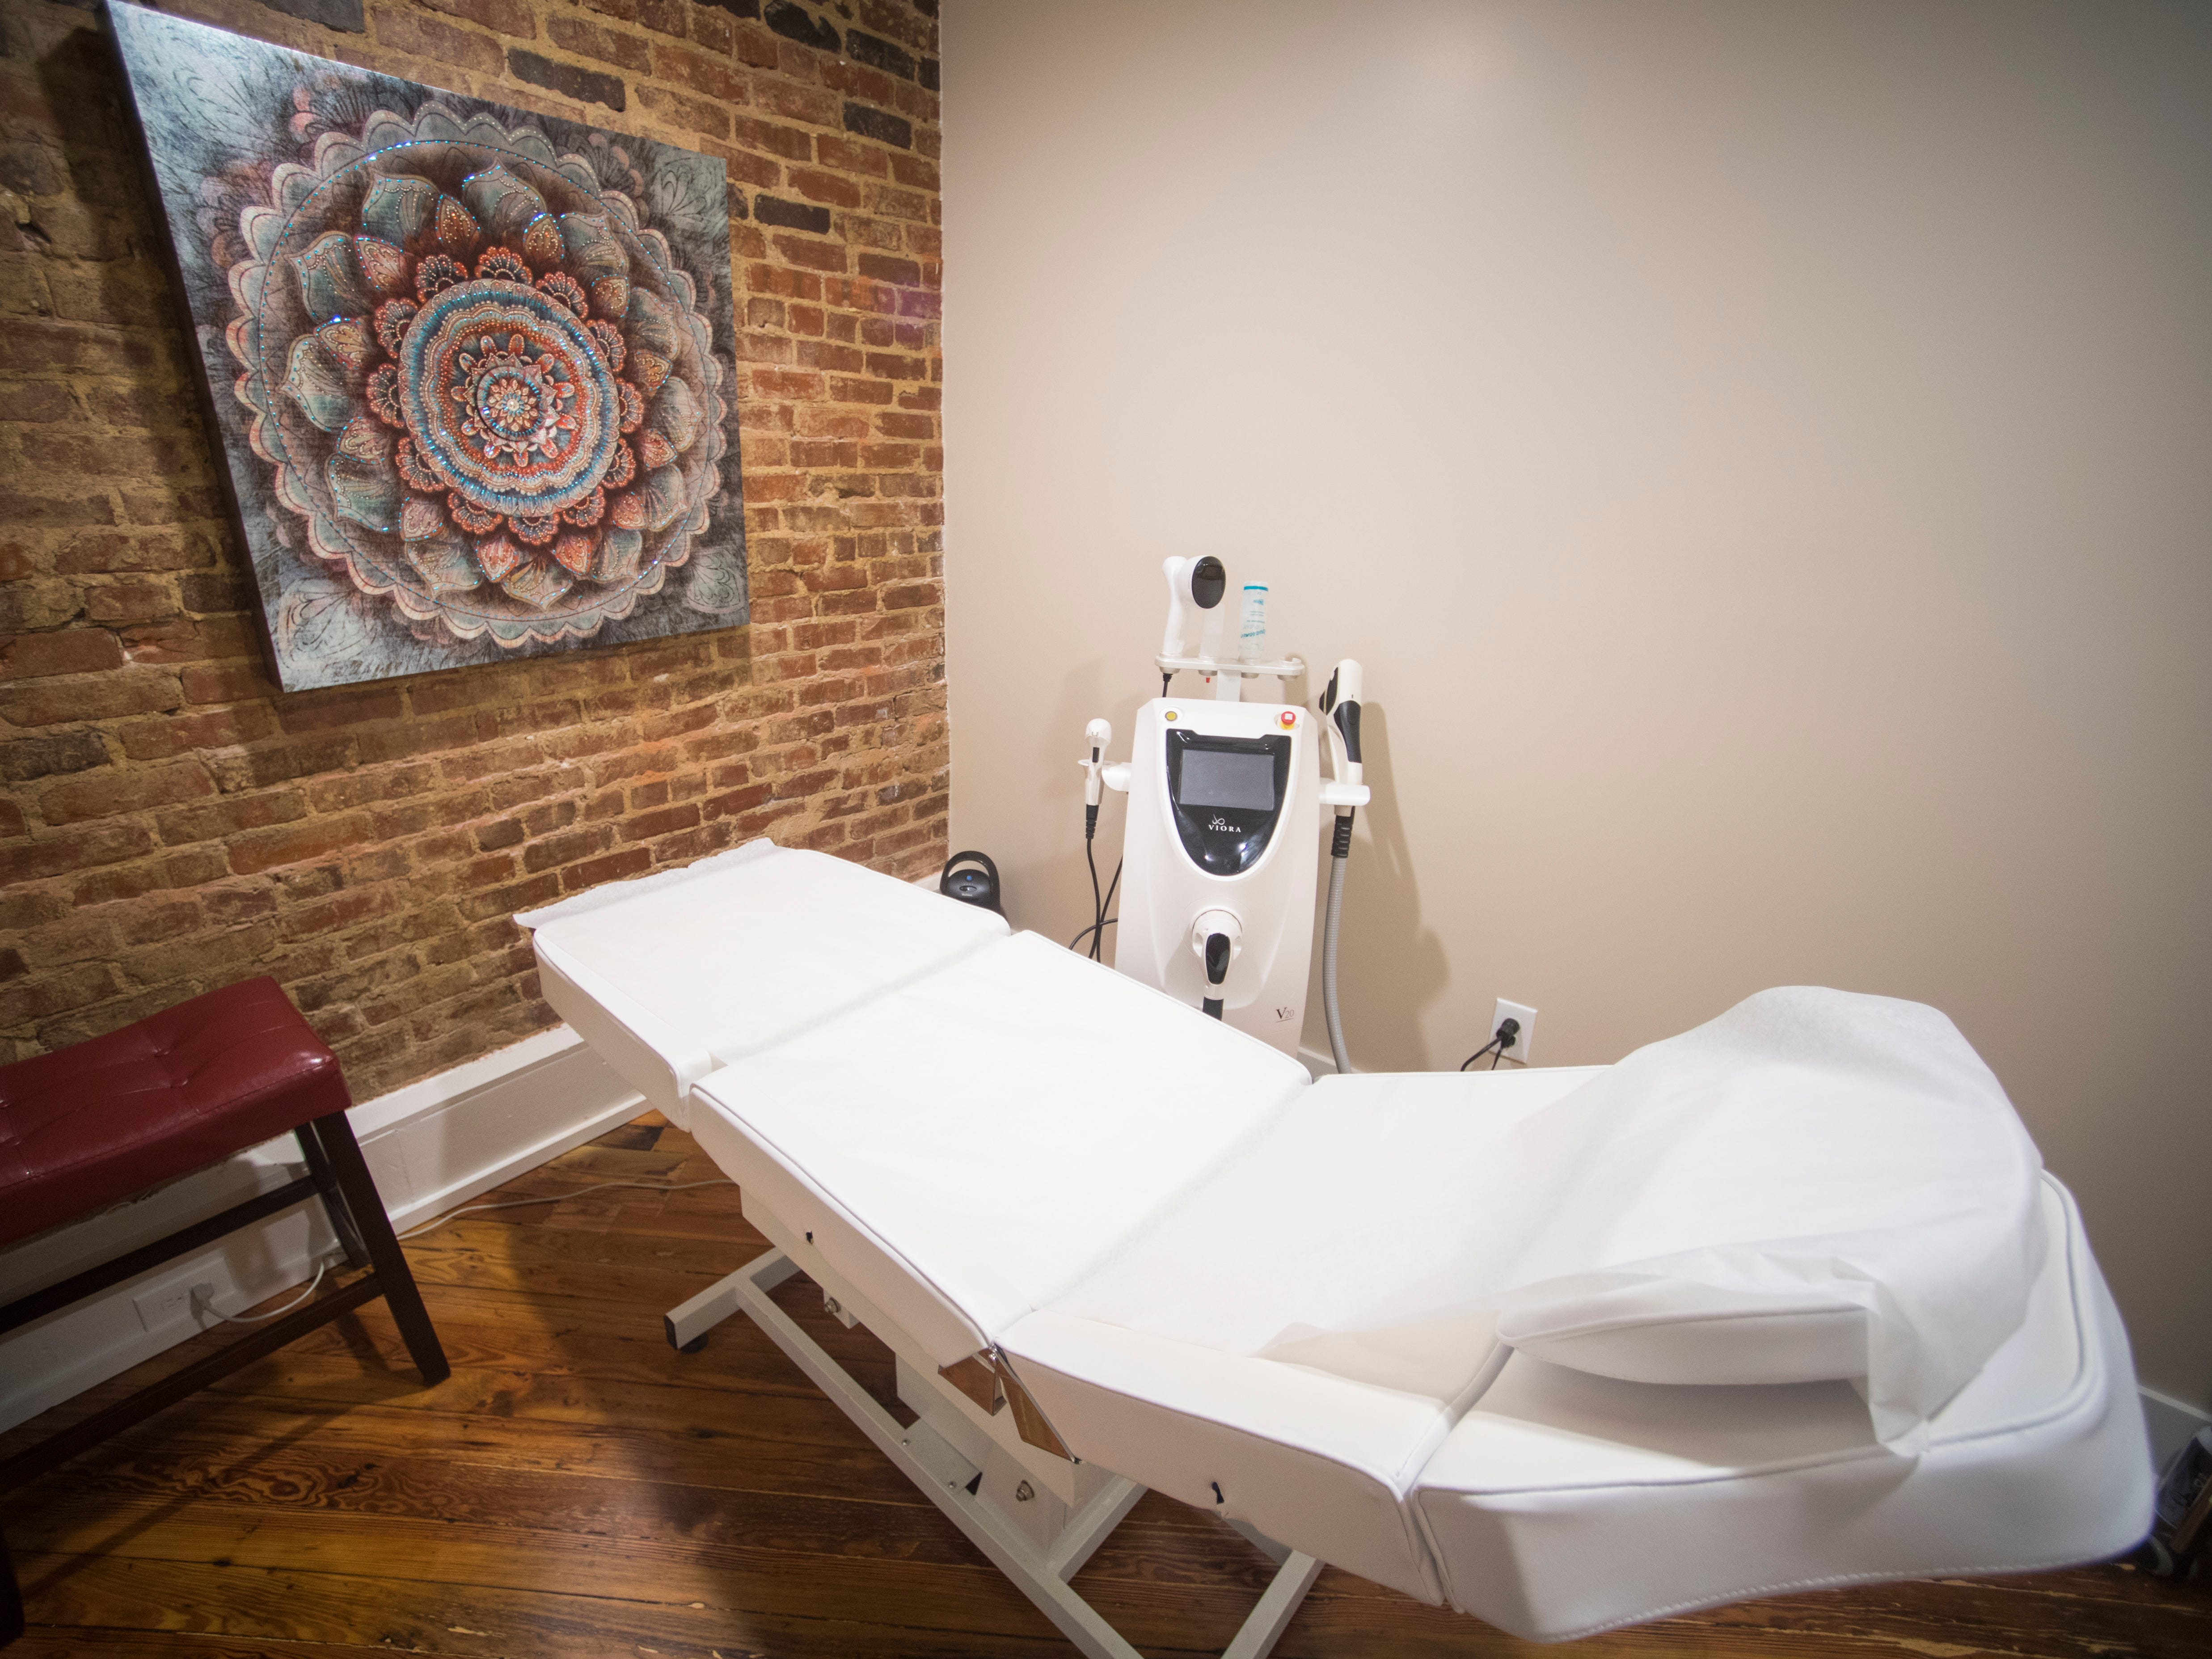 One of the rooms where skin services are performed at Old City MedSpa in downtown Knoxville on Monday, Feb. 4, 2019